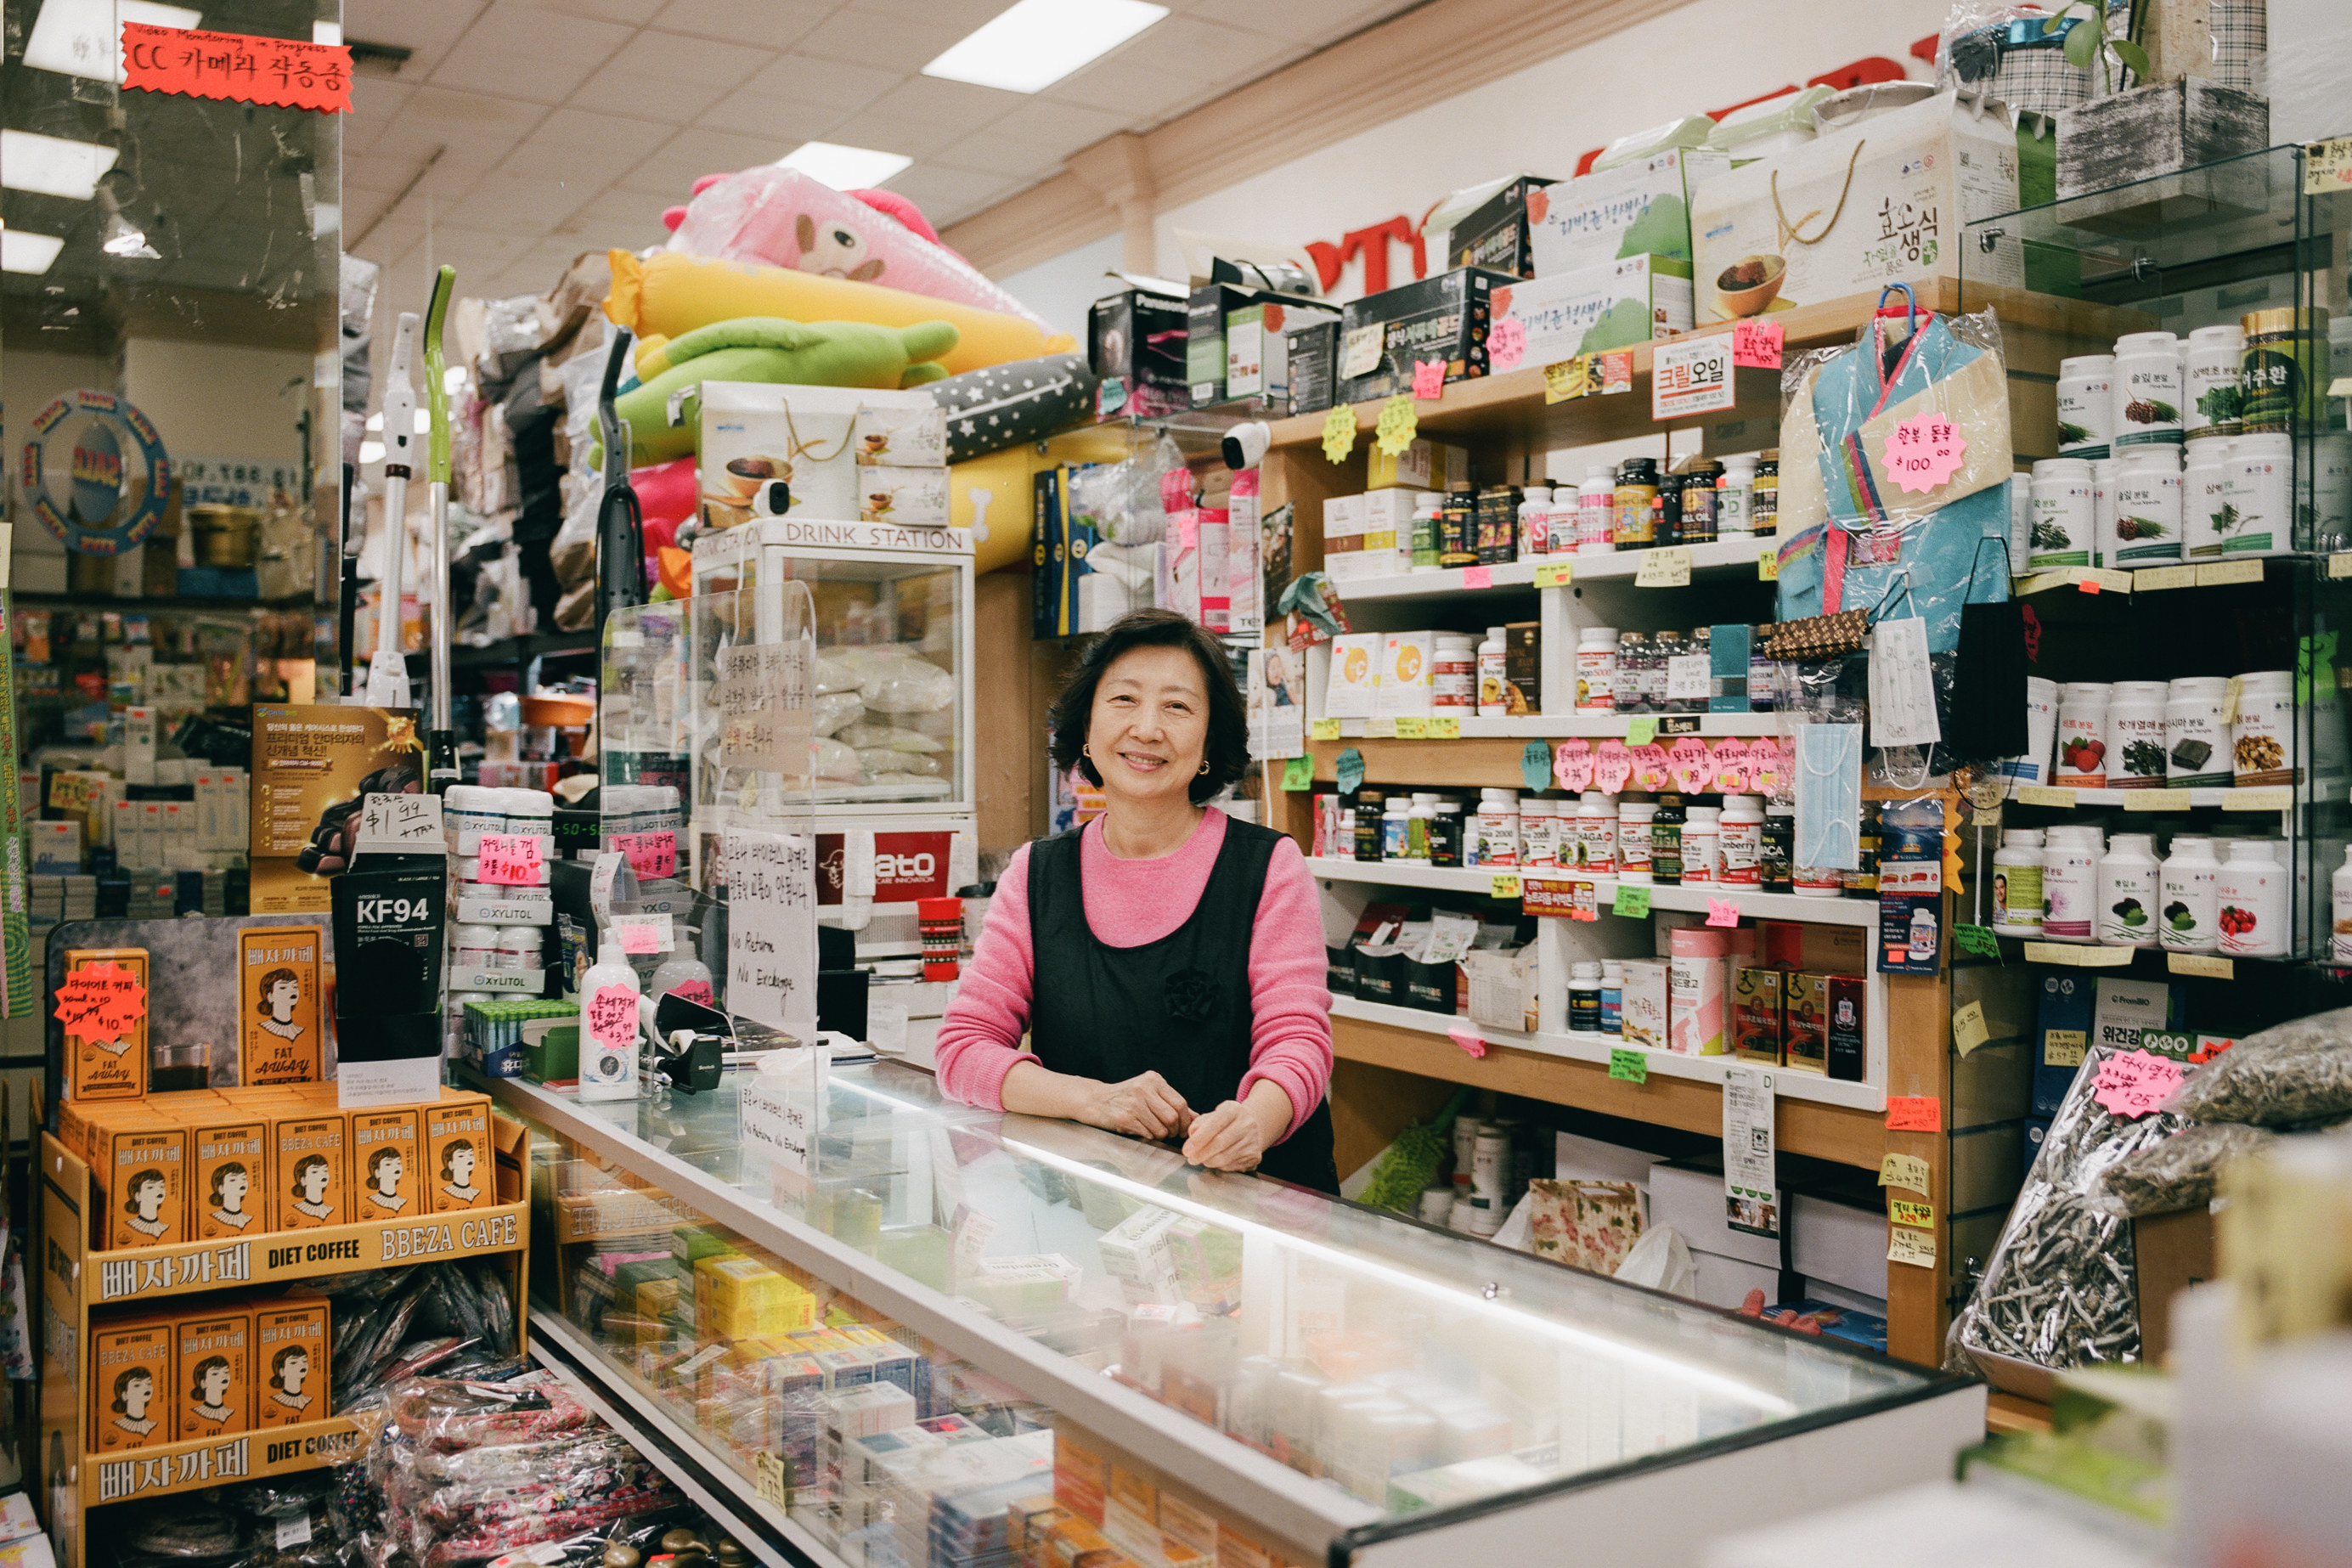 A woman smiling behind a counter of a very full home goods store